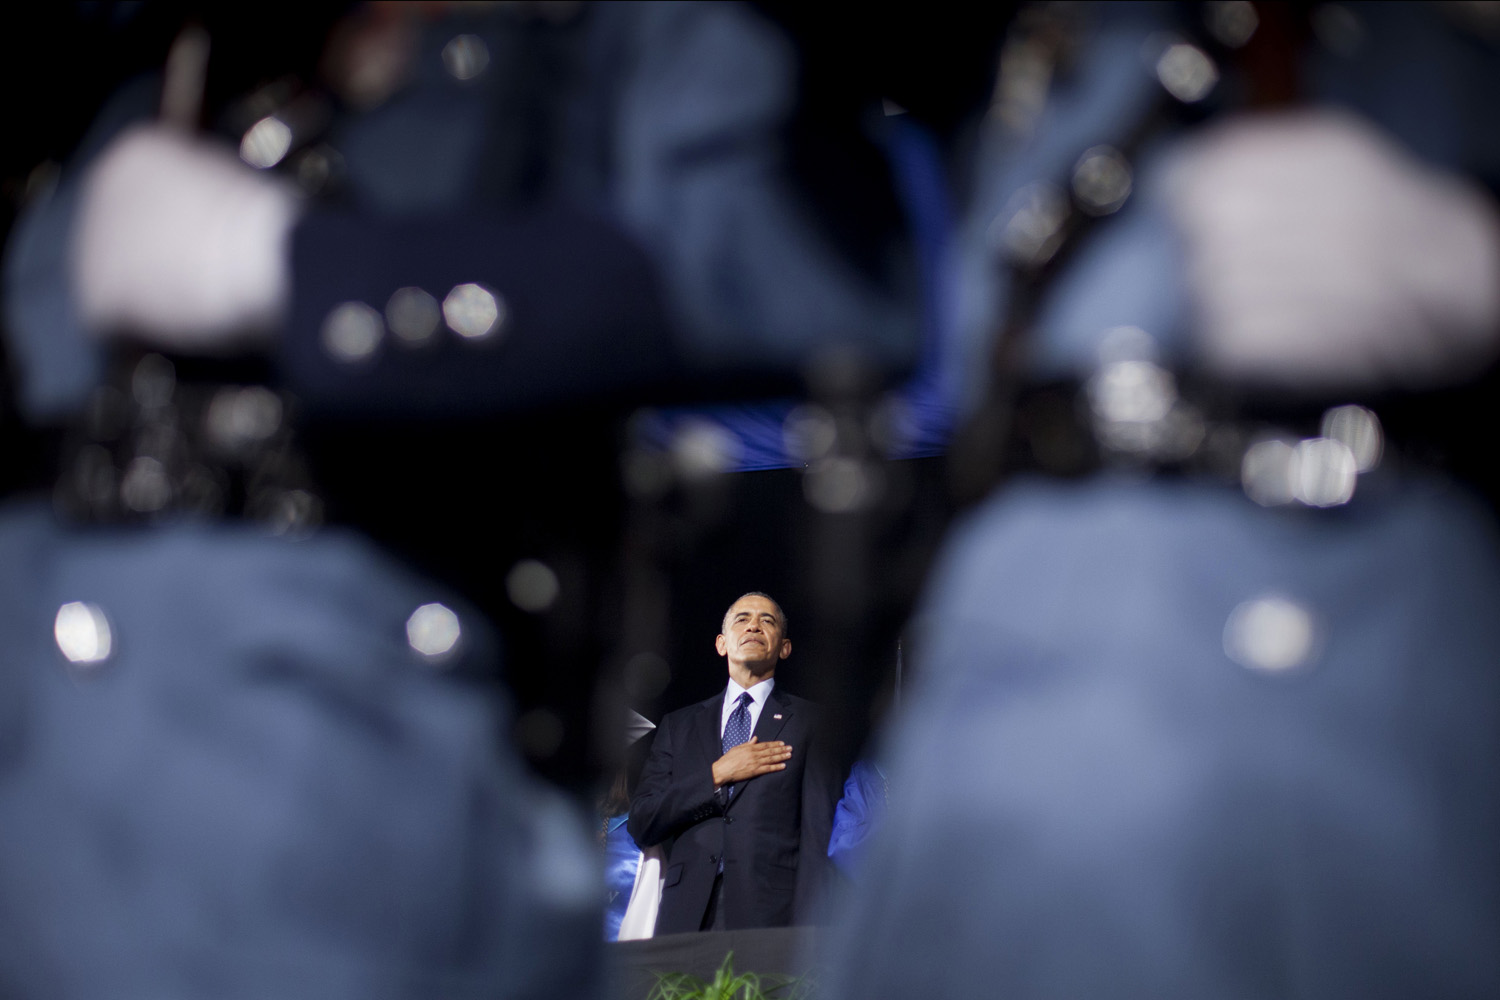 Jun. 11, 2014. President Barack Obama places his hand over his chest during the playing of the National Anthem prior to delivering the commencement address at Worcester Technical High School in Worcester, Mass.